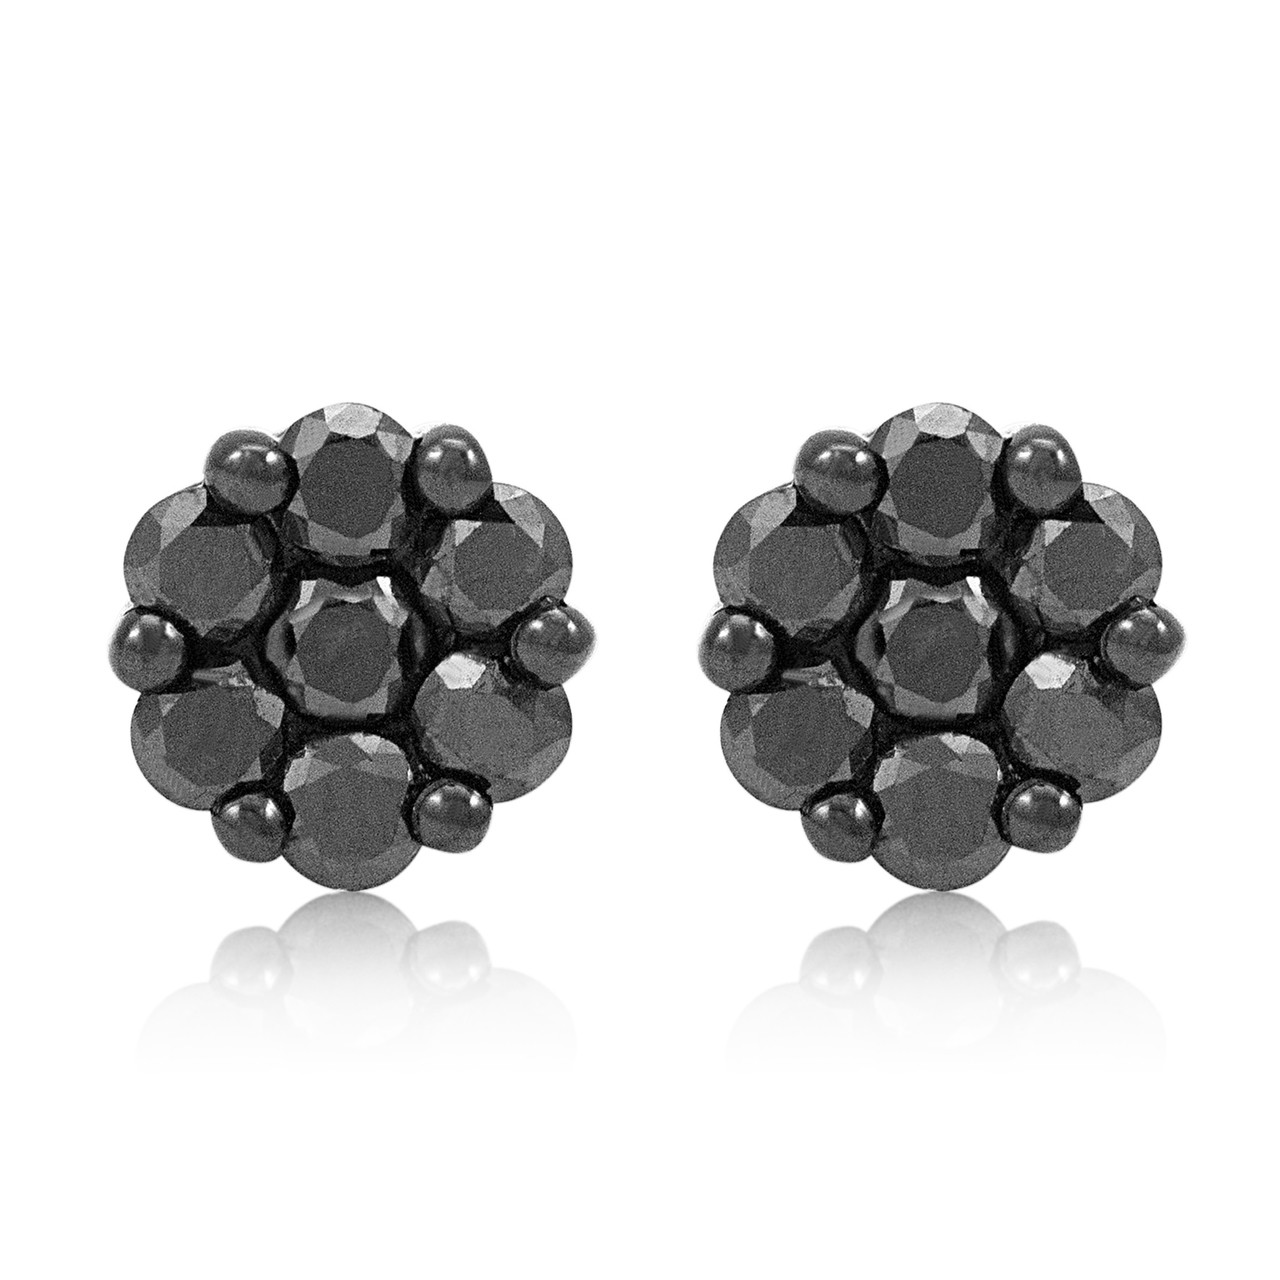 fb8225e26a1 10k Black Gold 1.30ct Black Diamond Studs - Shyne Jewelers